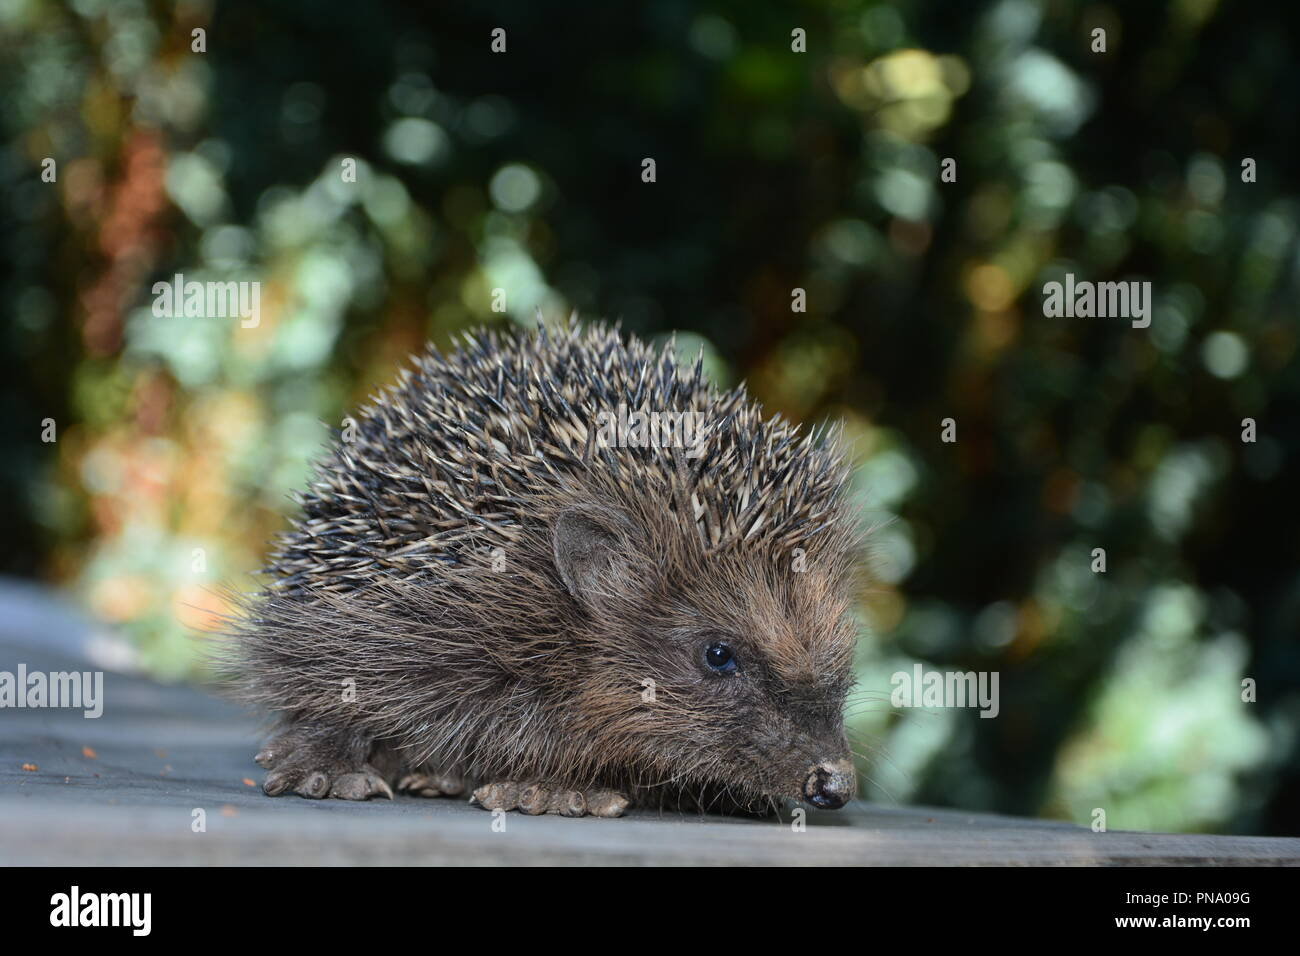 Hedgehog  on wood in front of green nature - Stock Image